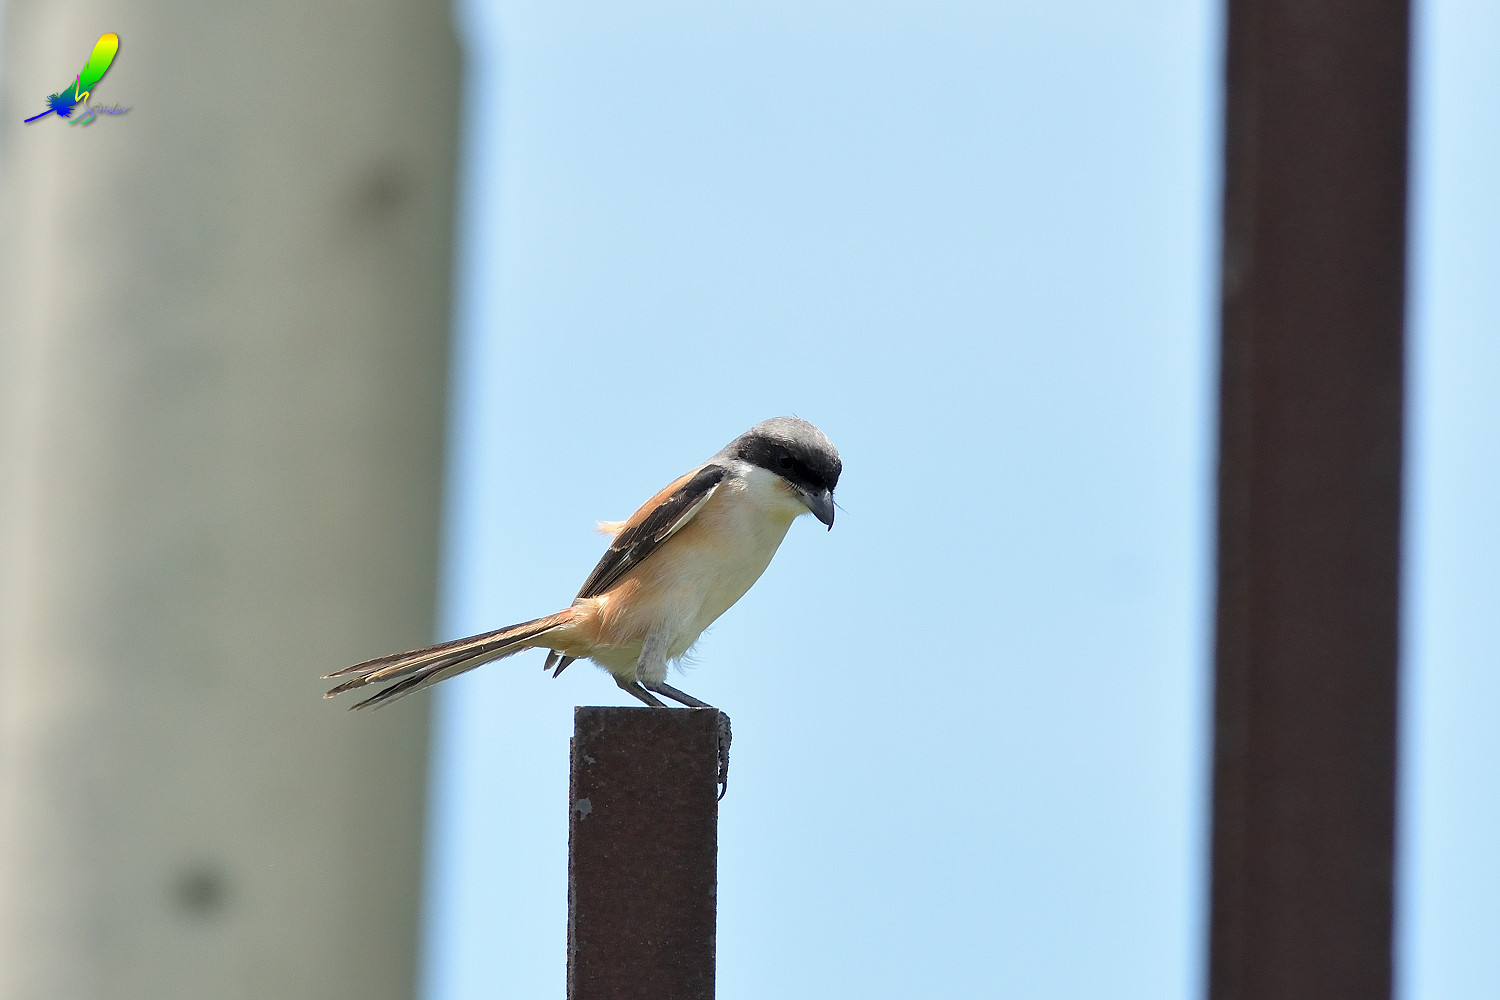 Long-tailed_Shrike_8379